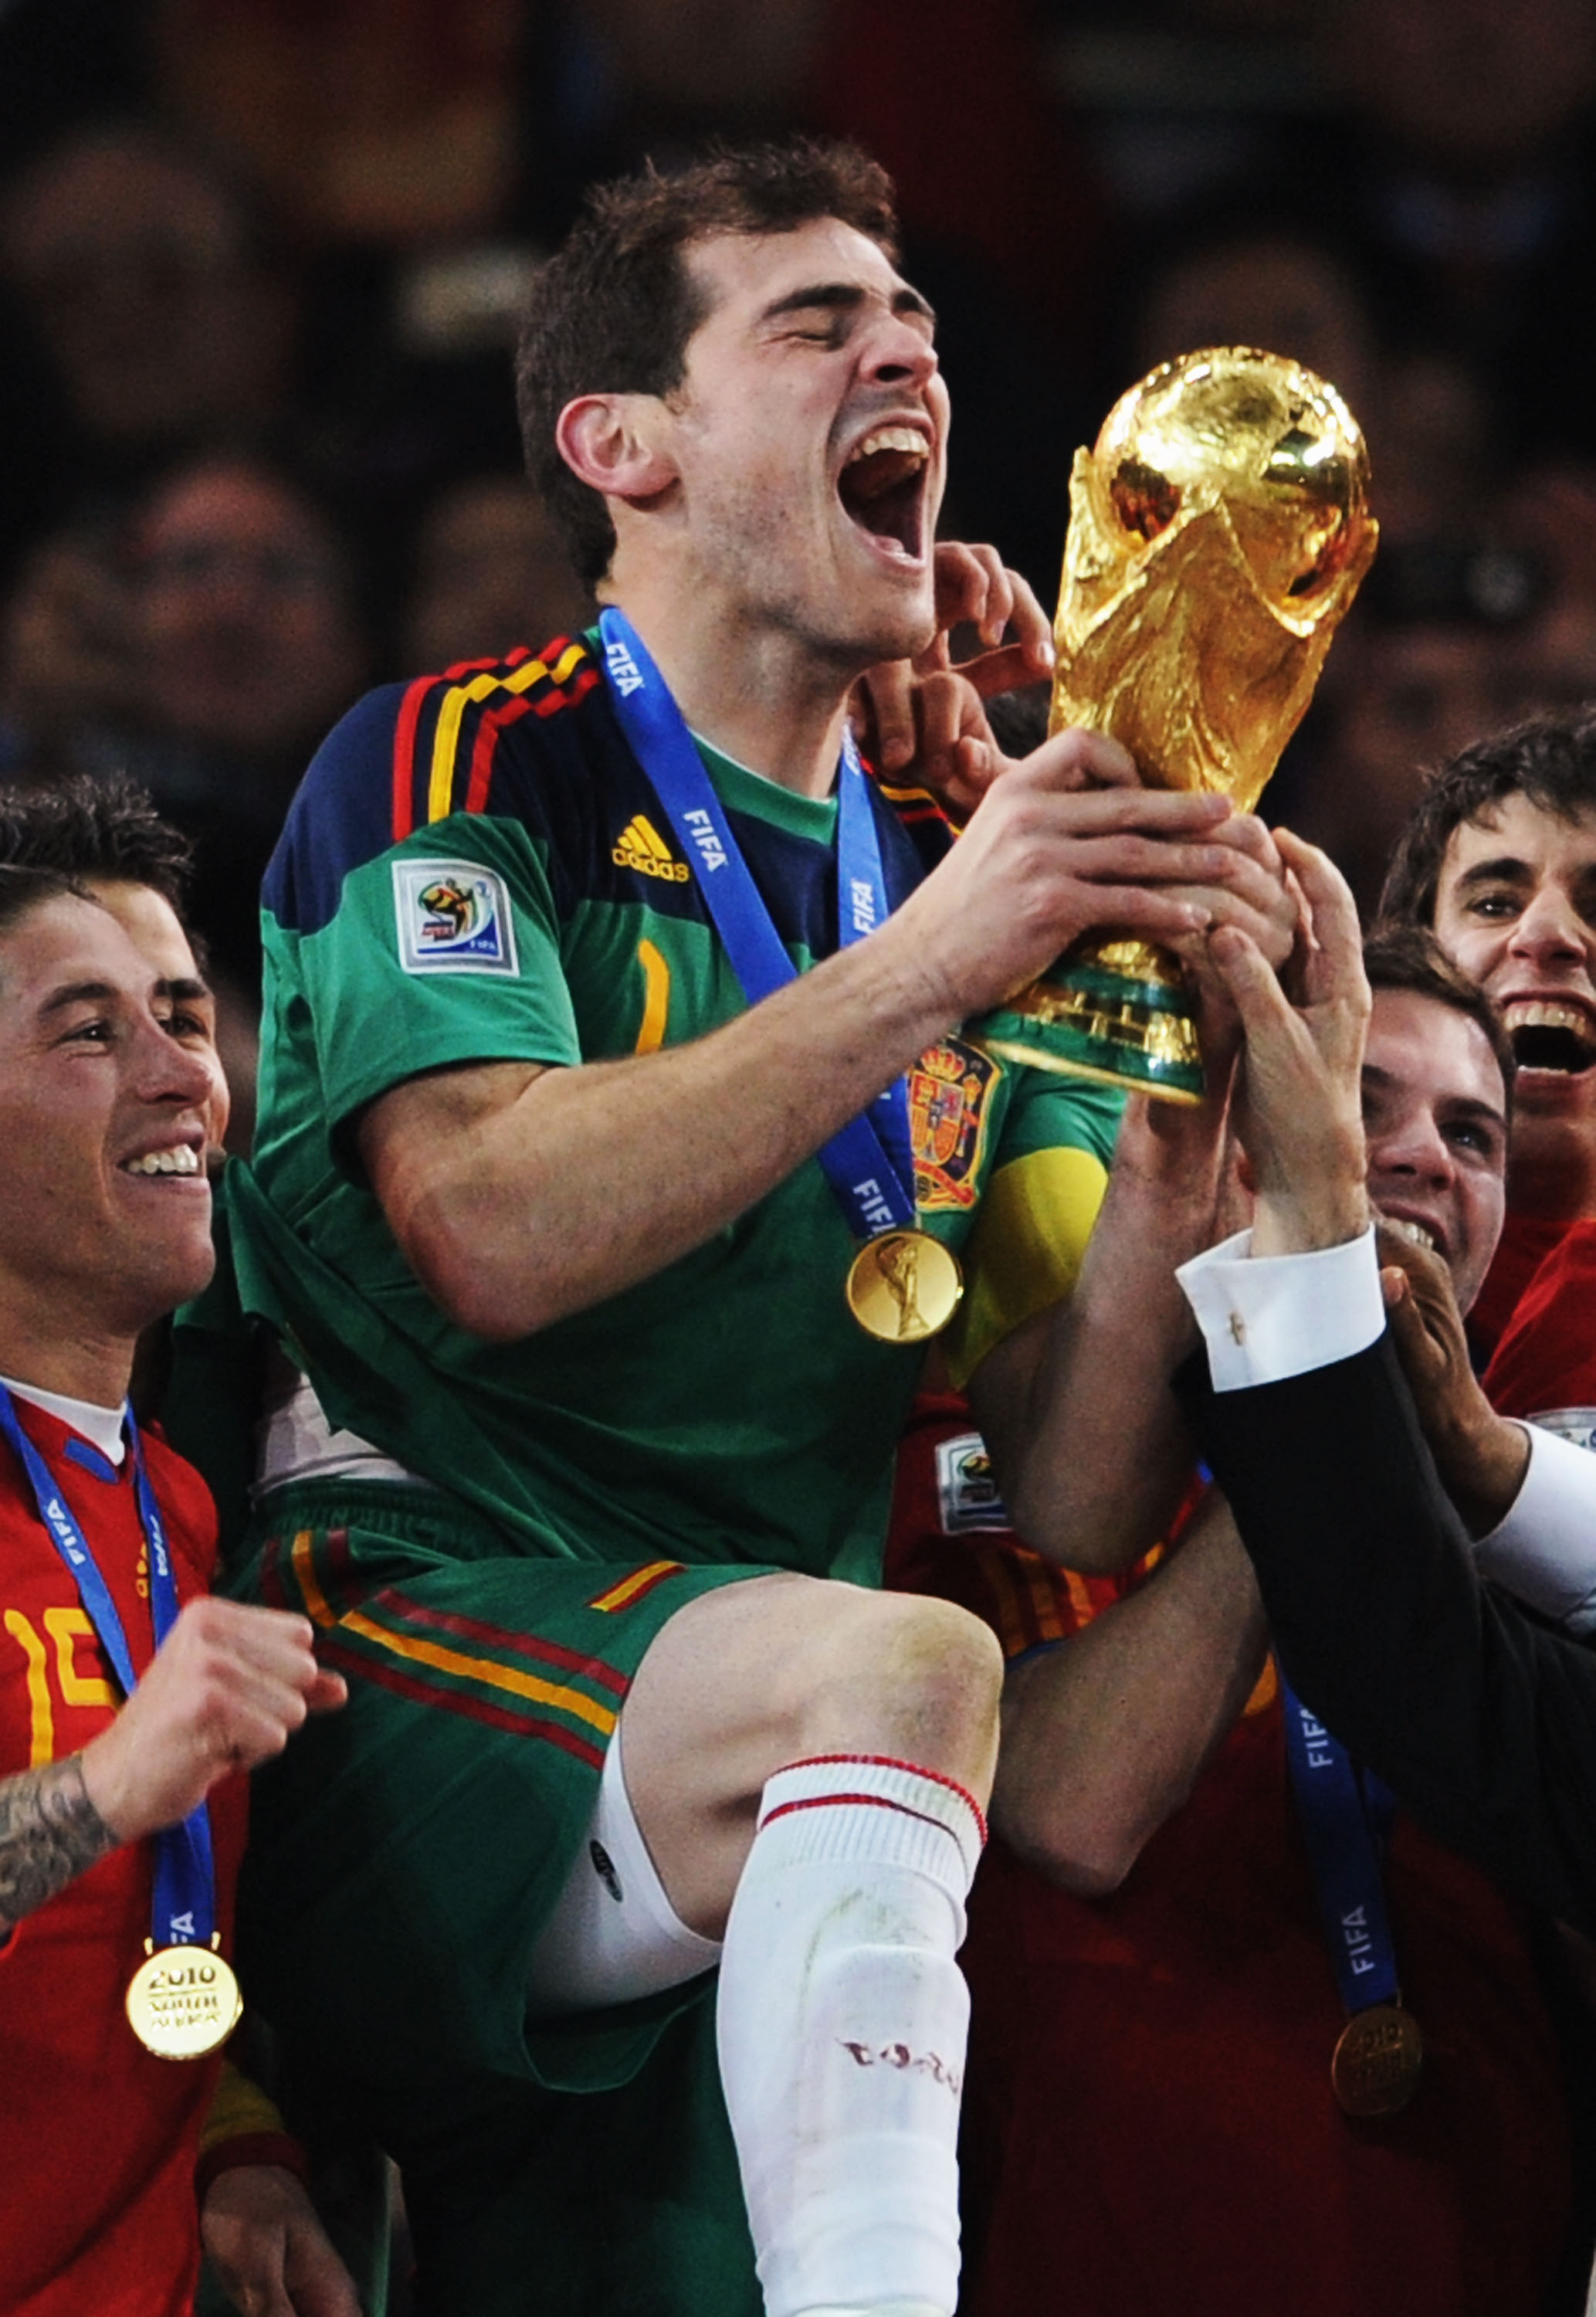 JOHANNESBURG, SOUTH AFRICA - JULY 11:  Iker Casillas, captain of Spain (C), and the Spain team celebrate victory with the World Cup trophy following the 2010 FIFA World Cup South Africa Final match between Netherlands and Spain at Soccer City Stadium on J